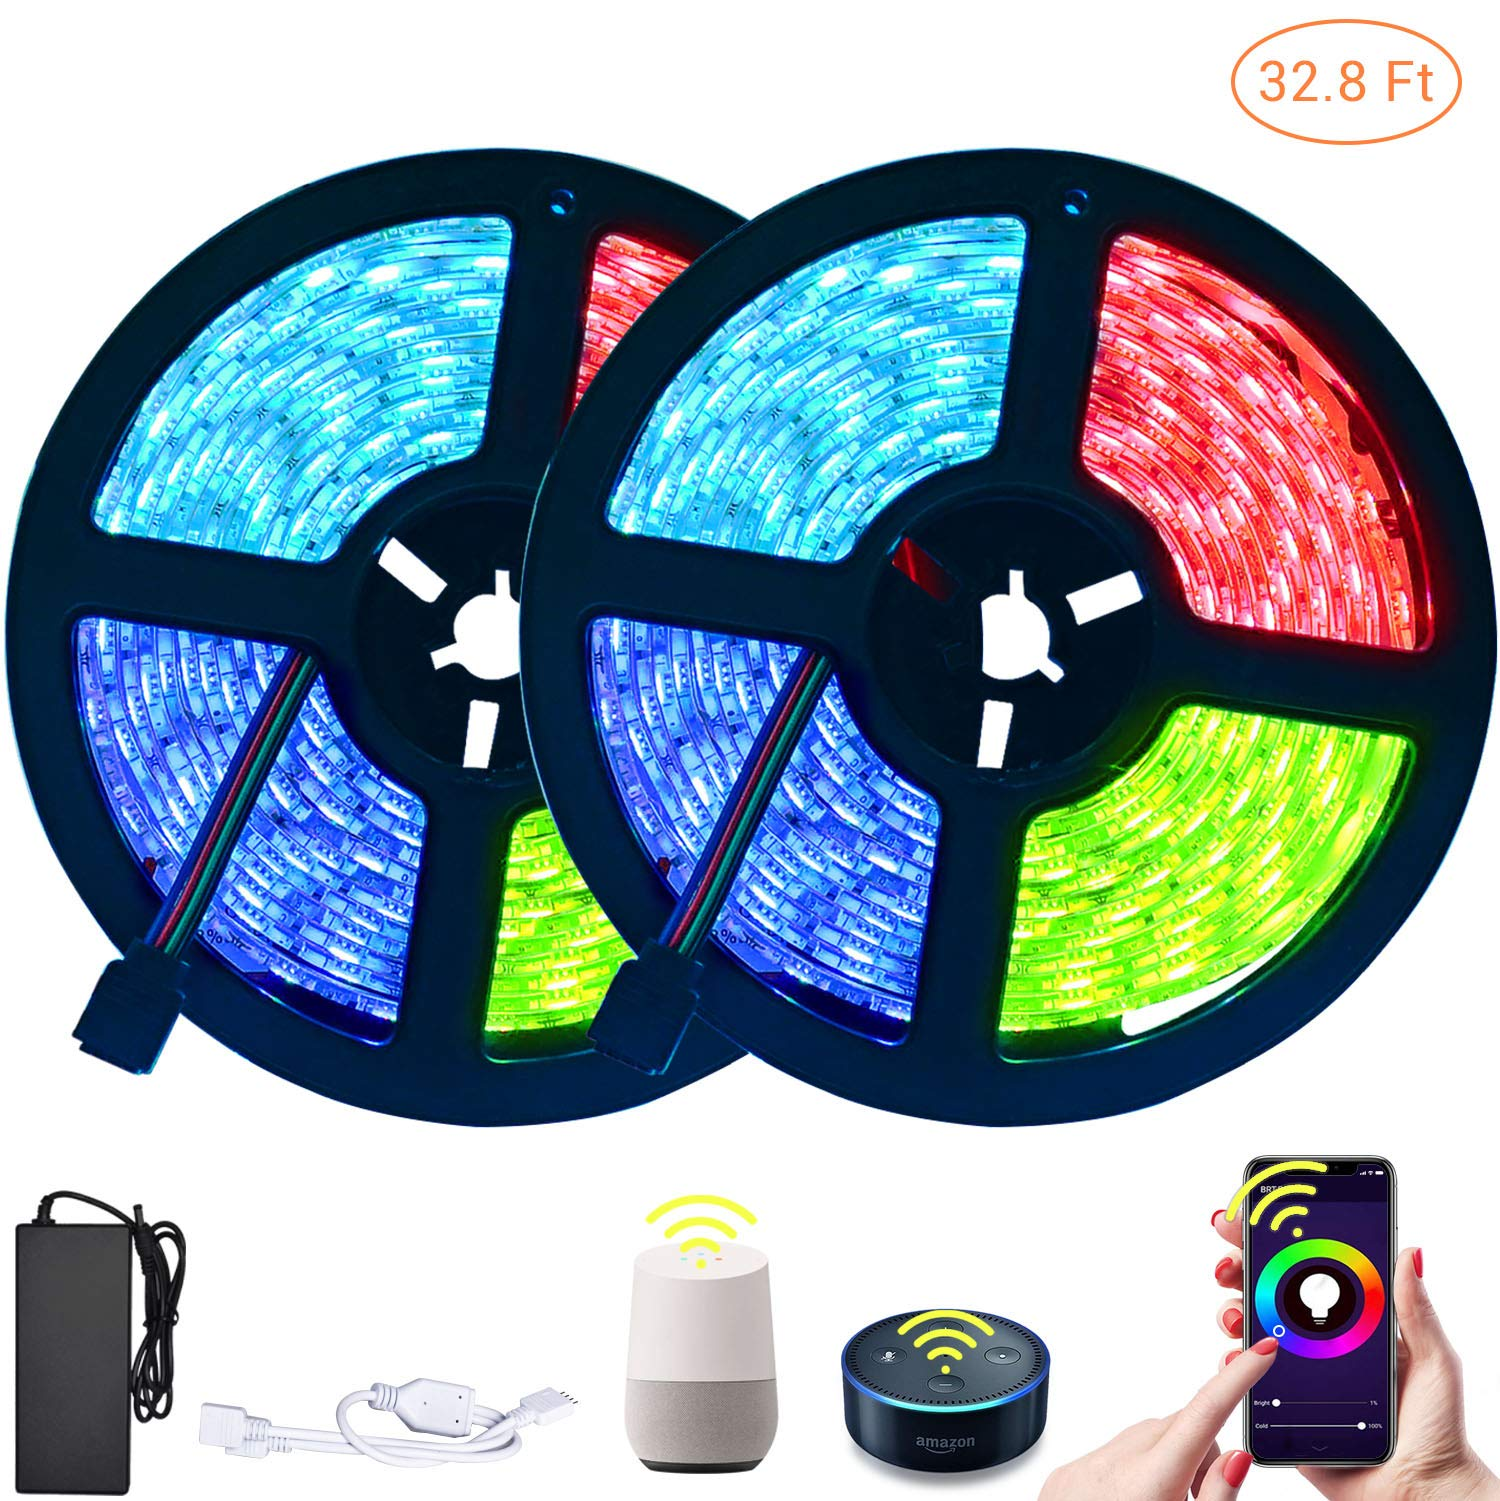 LETOUR LED Strip Lights 10M WiFi Smart RGB Strip Lights 4000K Colors Waterproof IP65 Work with Alexa Google Home & IFTTT Upgrade WiFi Controller 32.8FT 600 LEDs (32.8ft 600LEDs WiFi Control-2Pack)